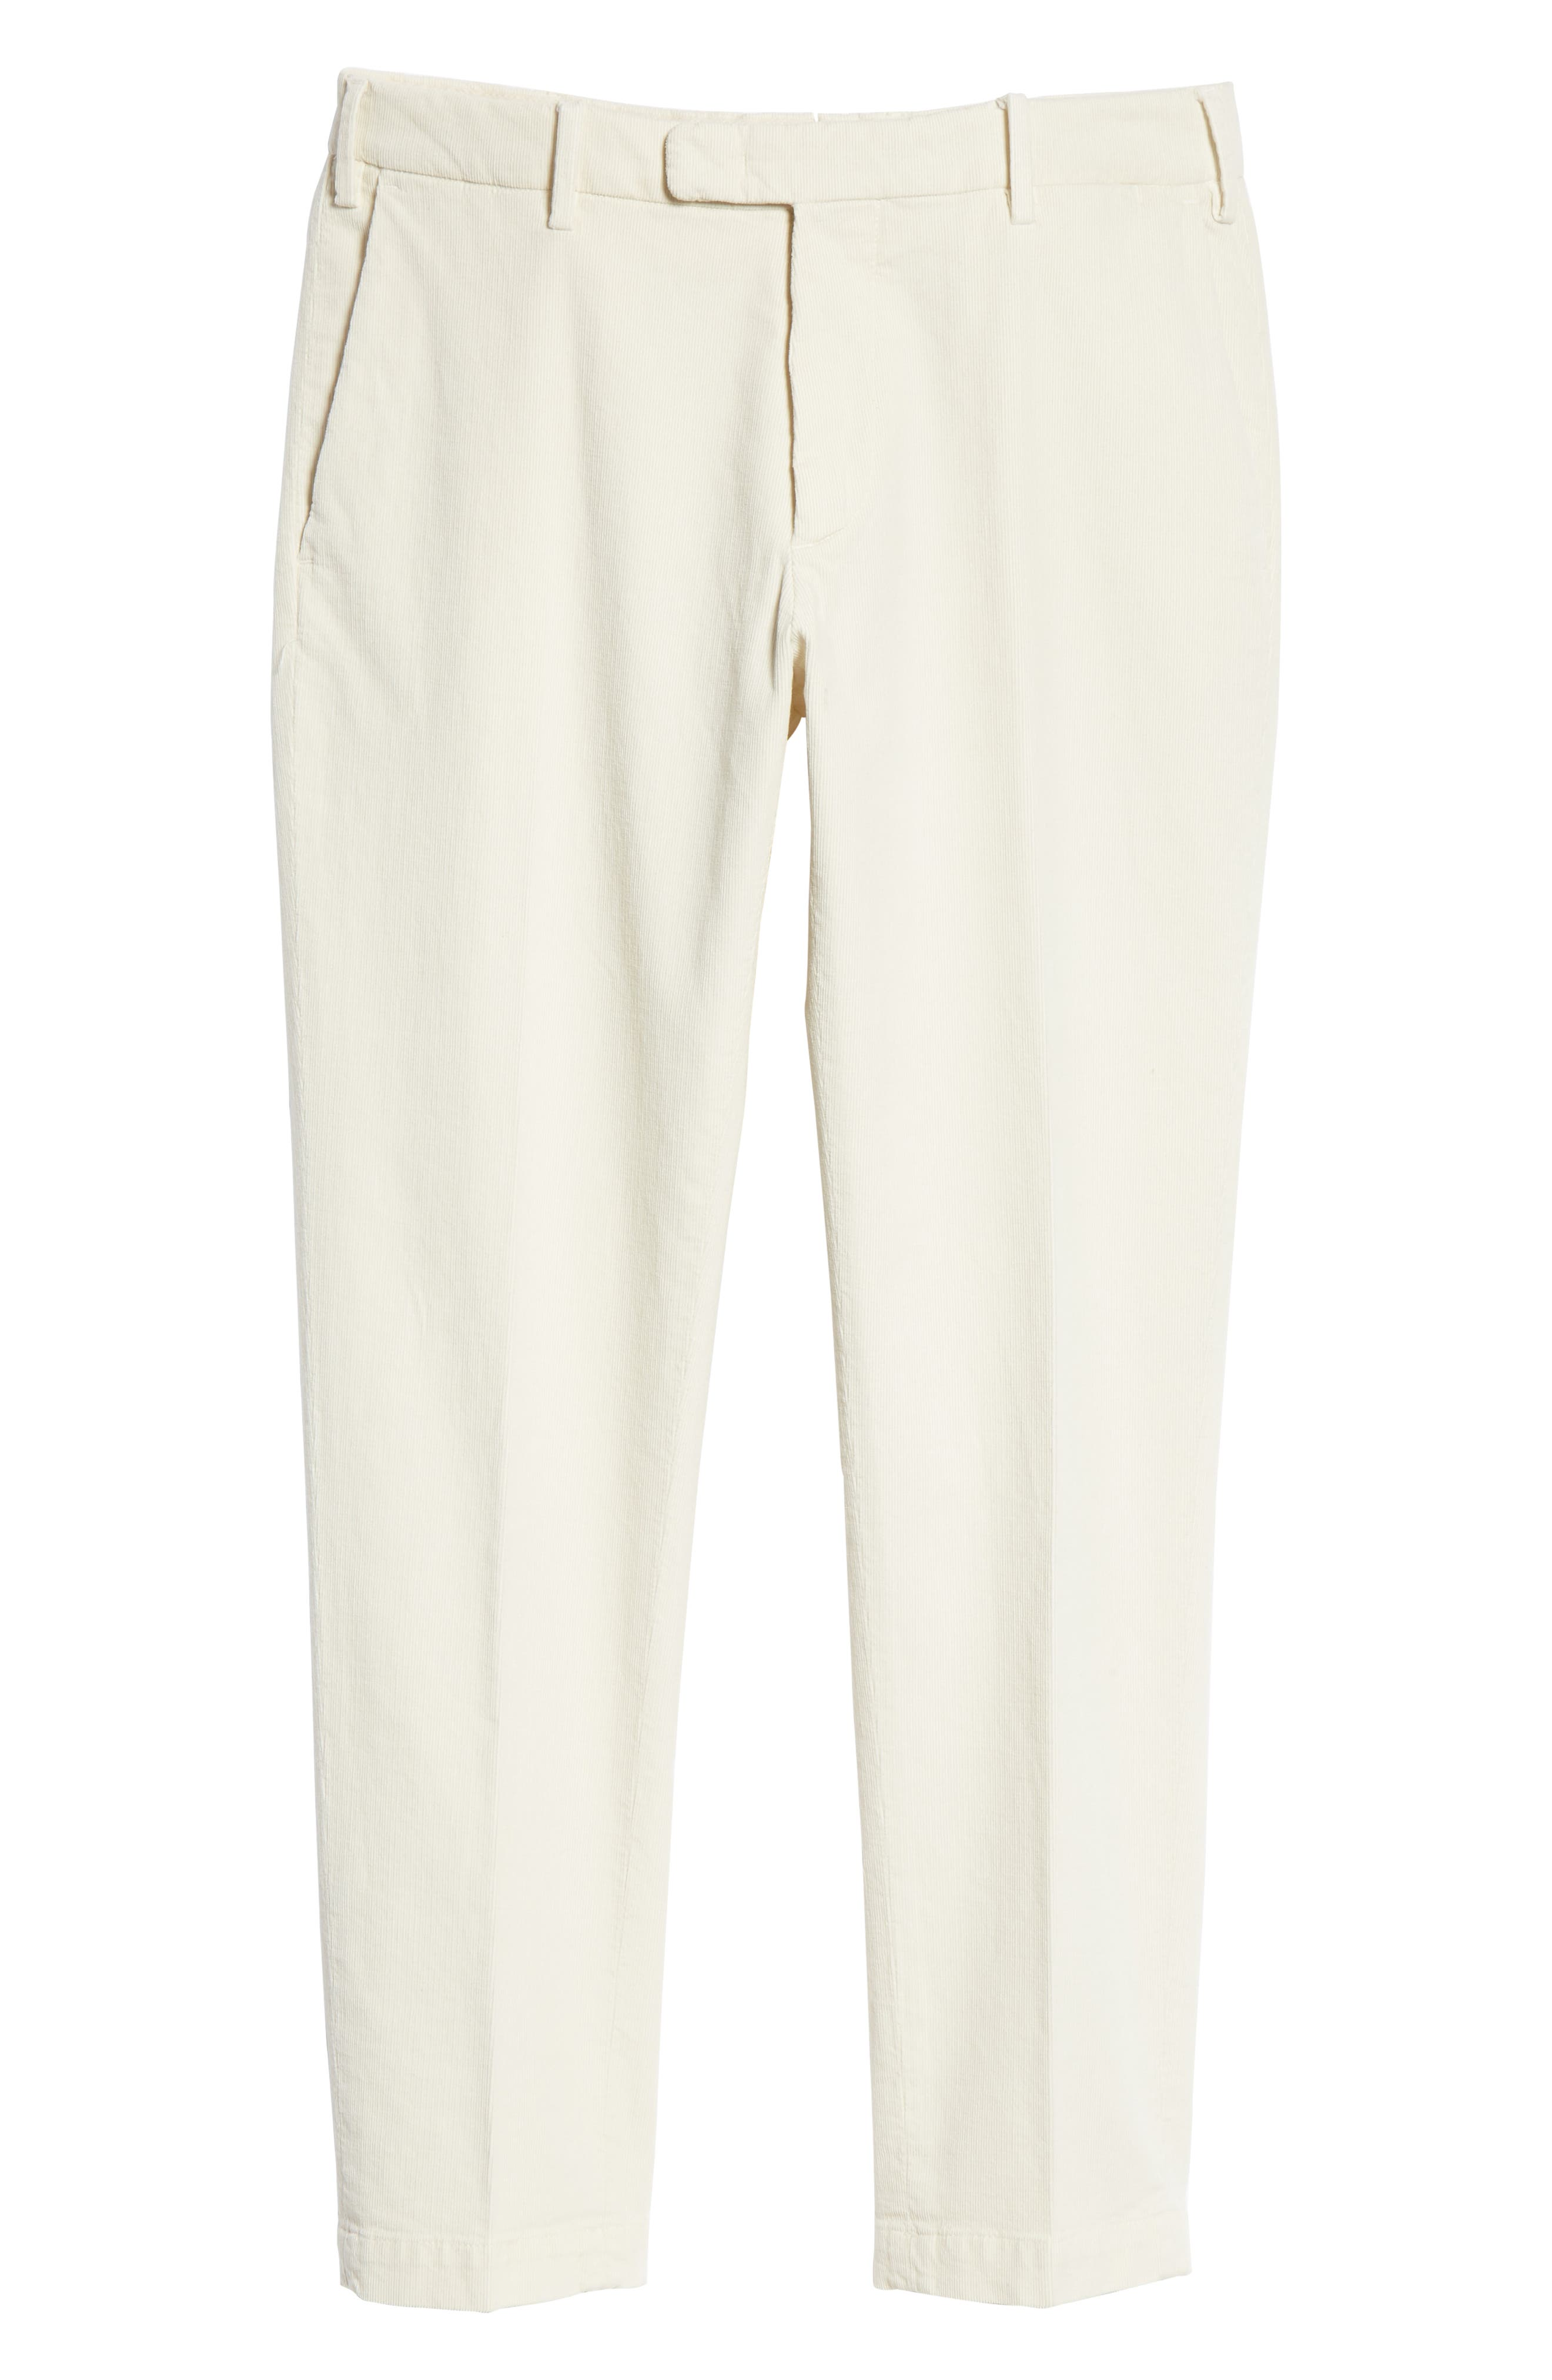 Flat Front Stretch Solid Cotton Blend Trousers,                             Alternate thumbnail 6, color,                             WINTER WHITE